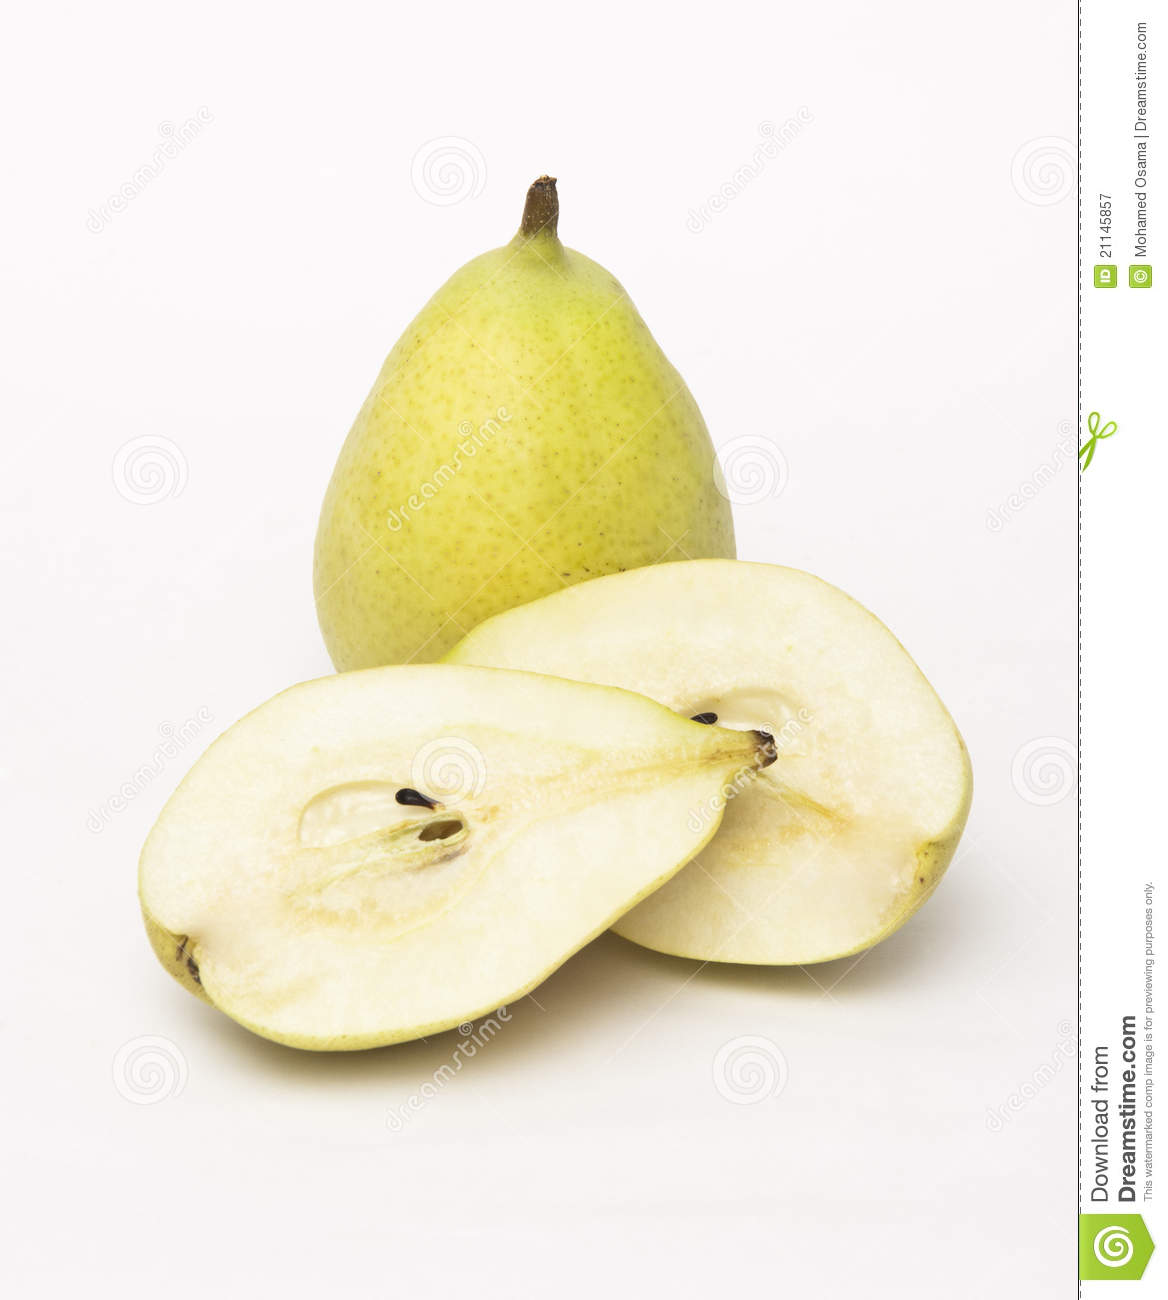 Cut Open Pear Royalty Free Stock Photography Image 21145857